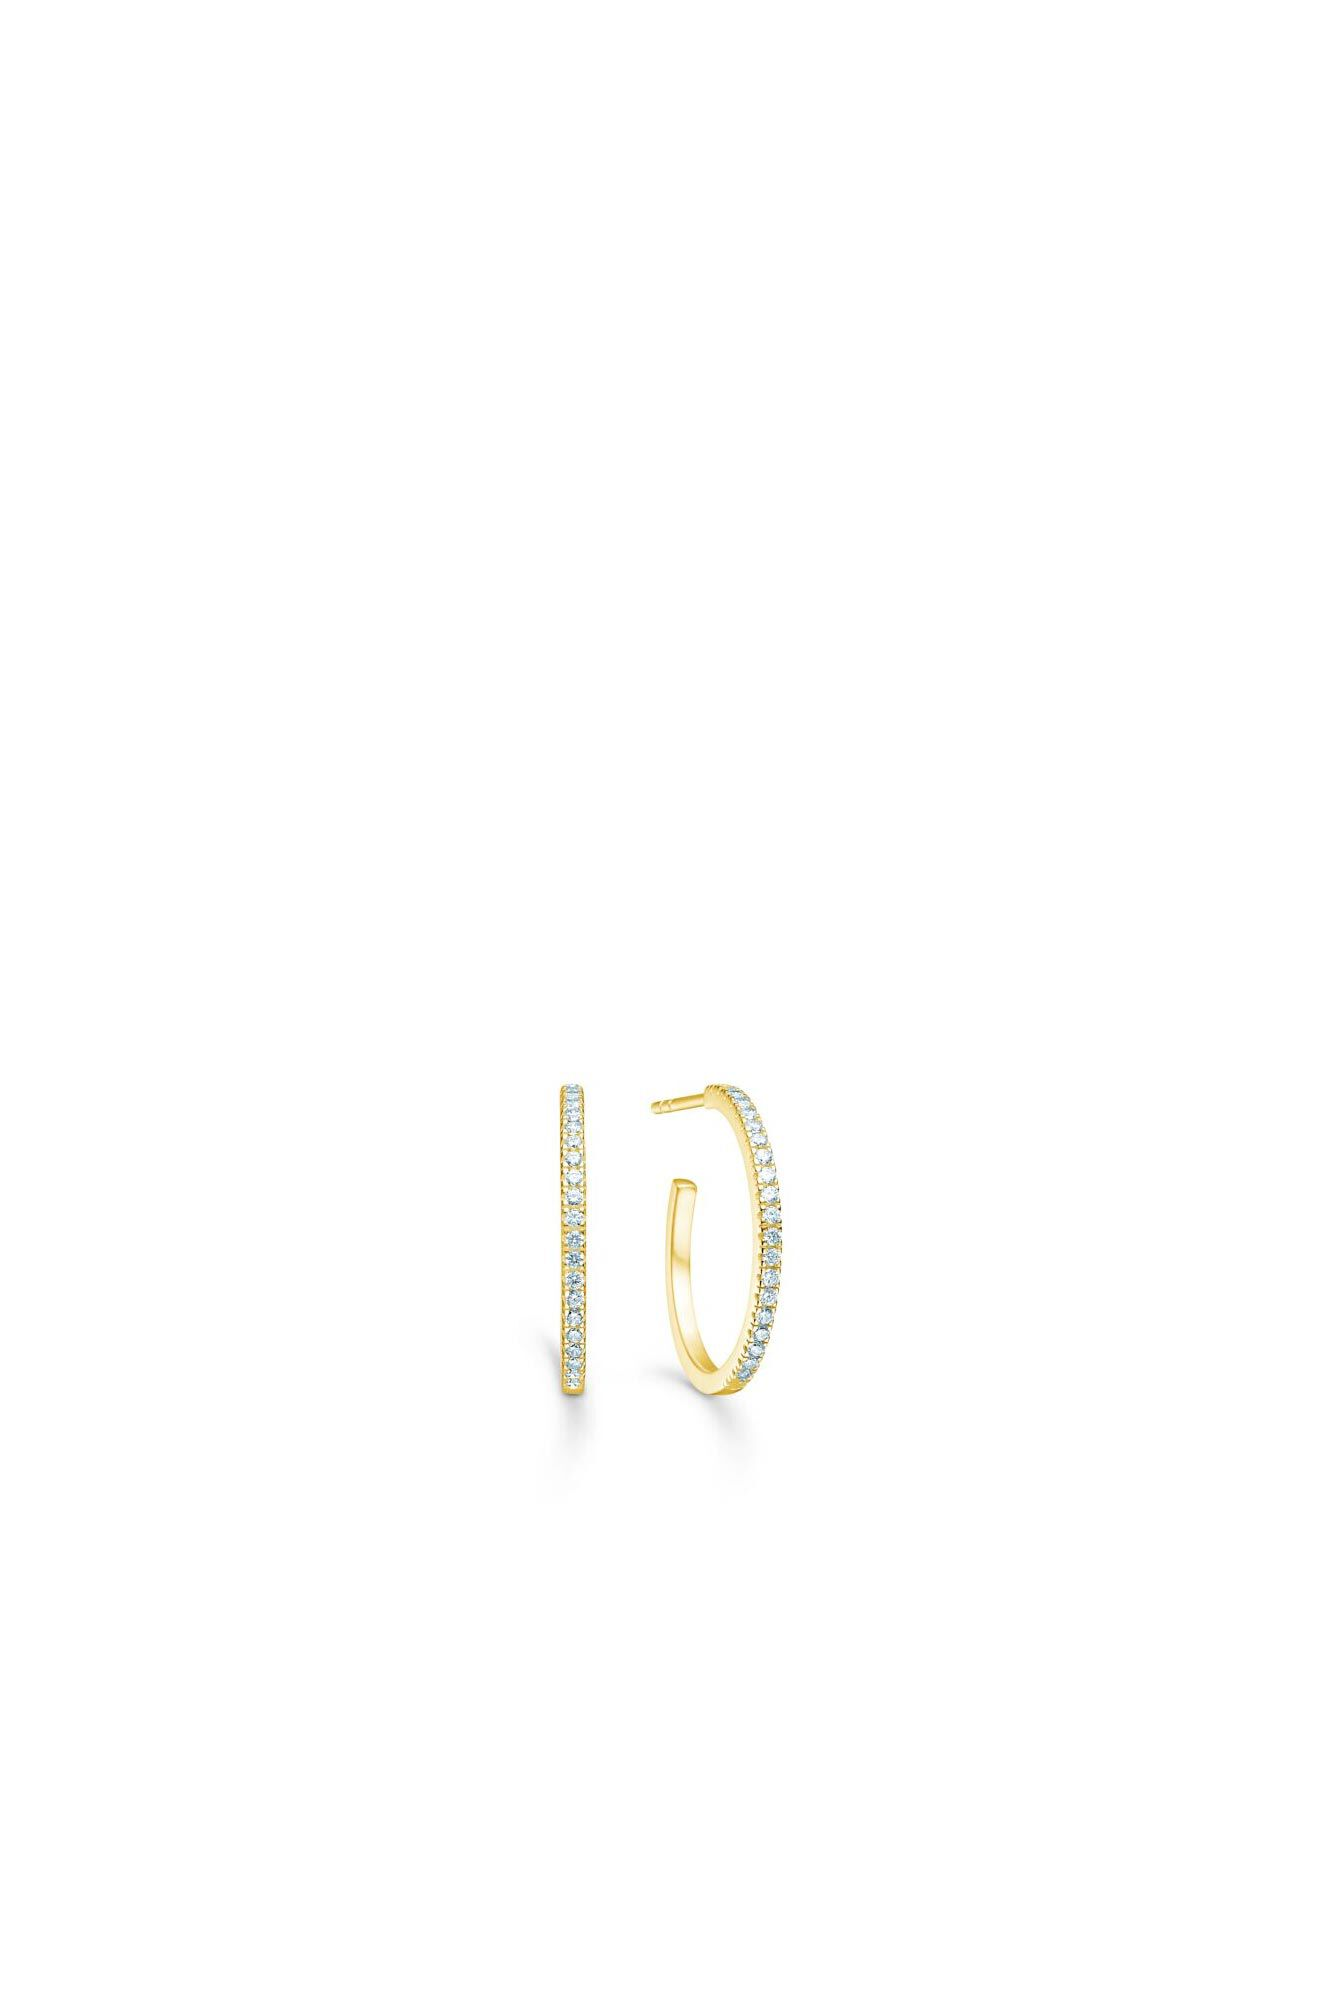 Simplicty mini hoops IDE009GH, GOLD/WHITE